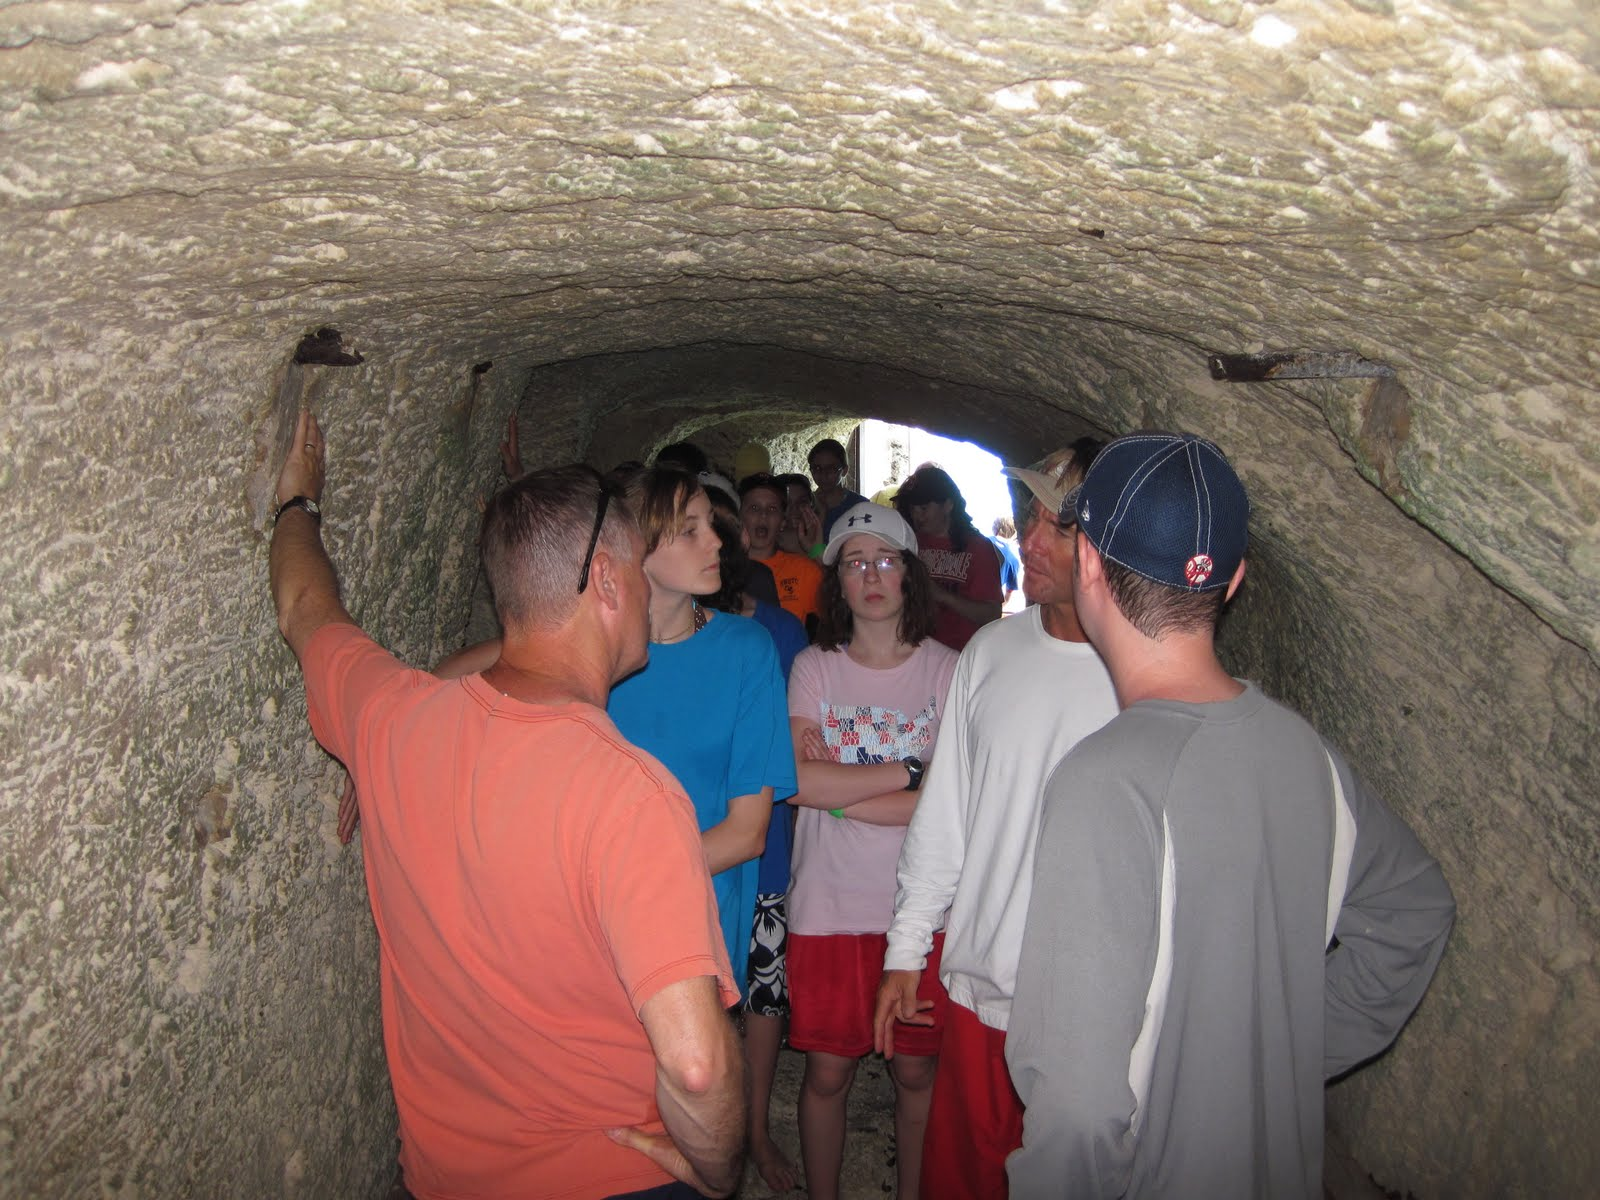 Vernon Bermuda Workshop 2011 Andrew Smith Shorts Cokelat 33 We Also Saw An Air Raid Shelter Dug By Delinquent Boys